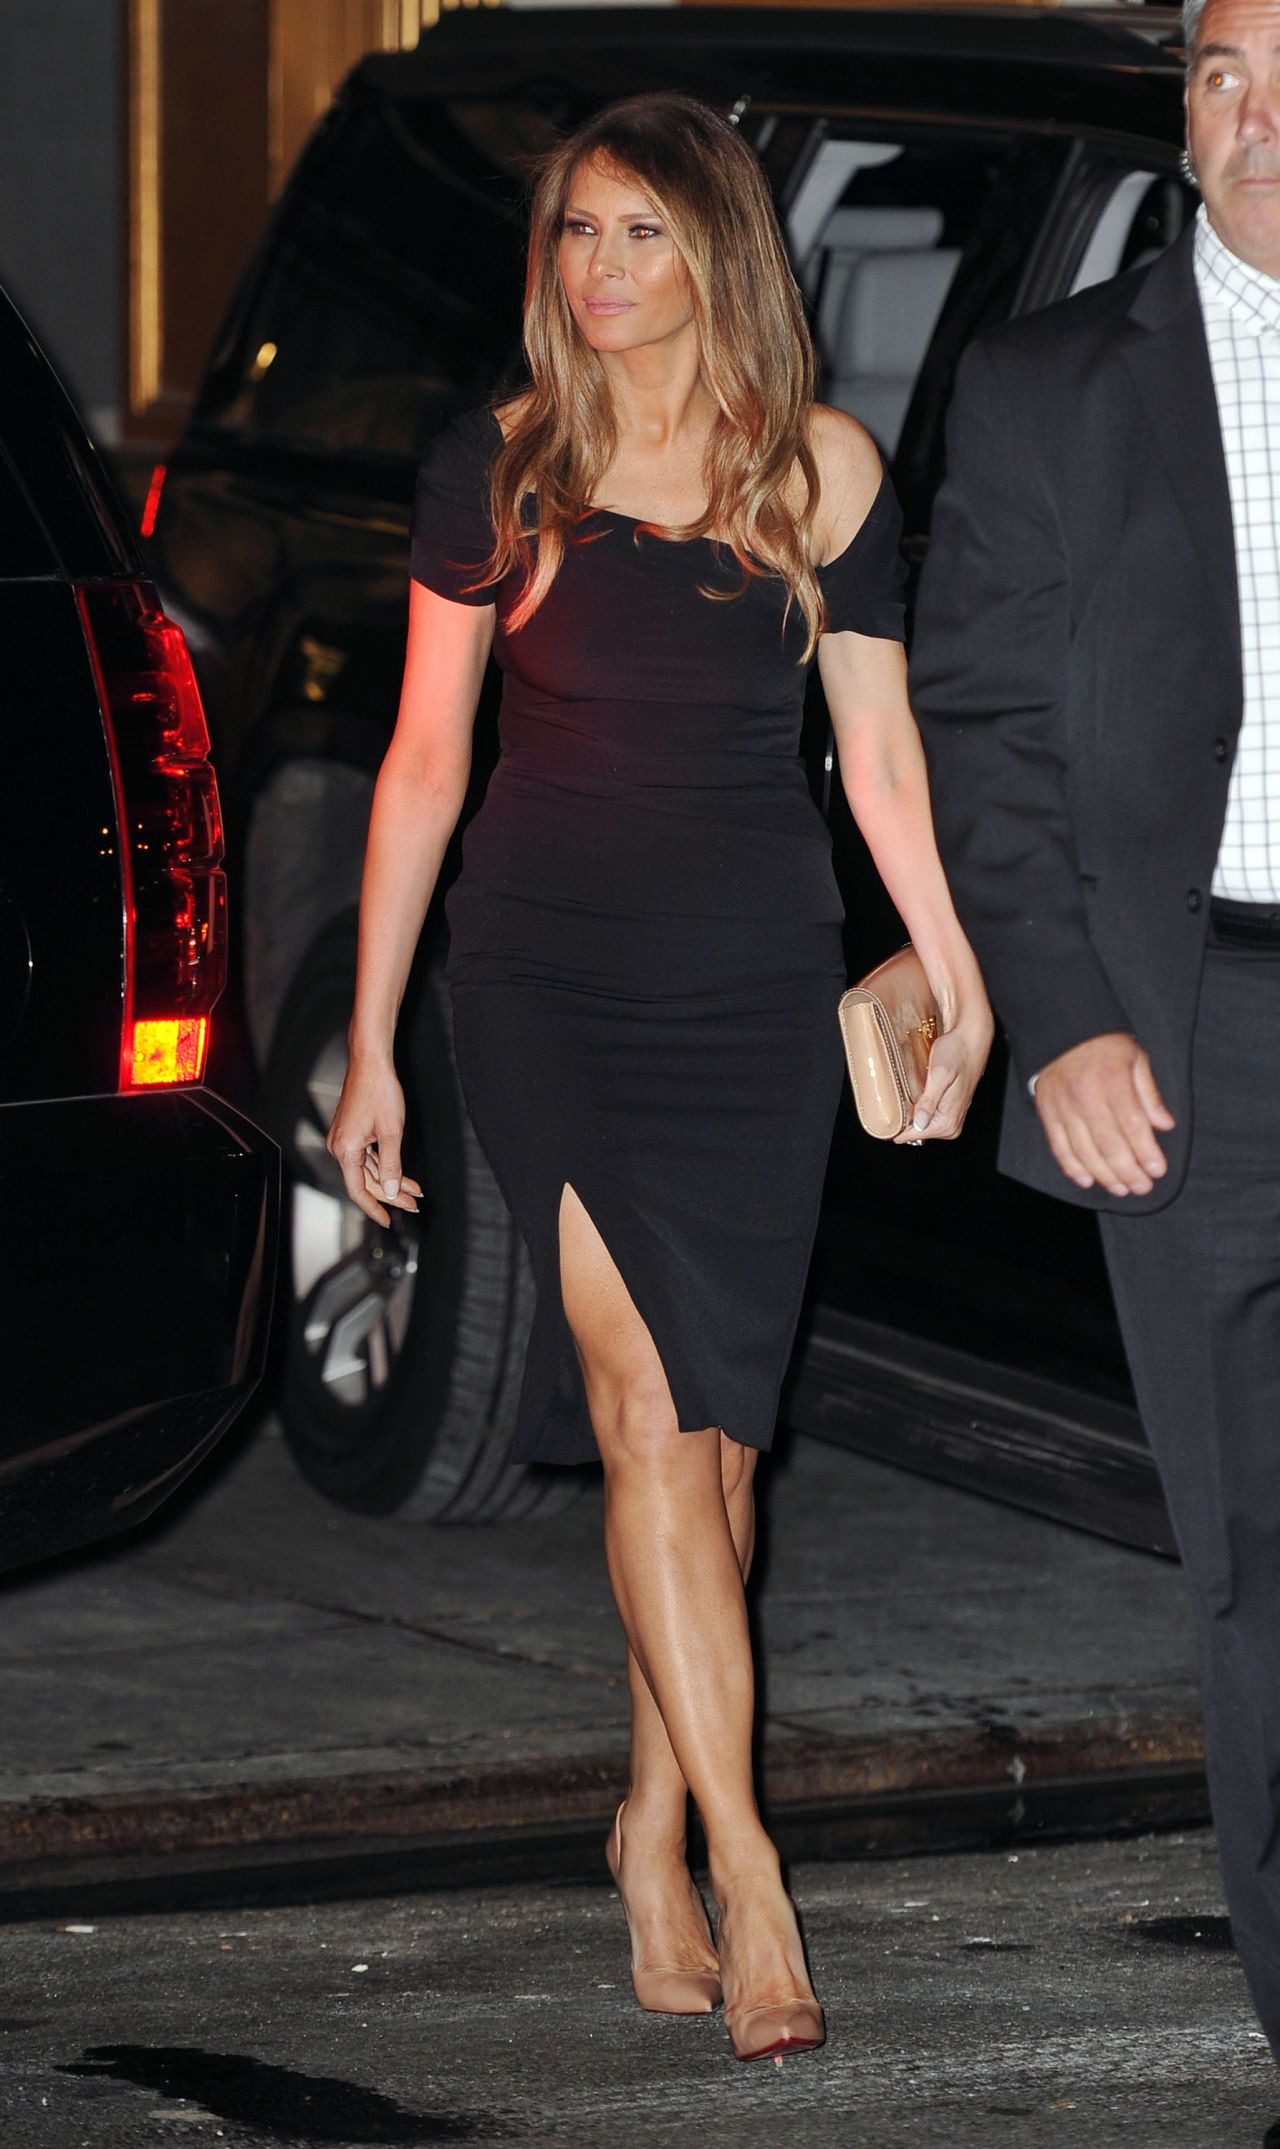 Melania Trump – Departing Polo Club Restaurant in NYC, August 2016